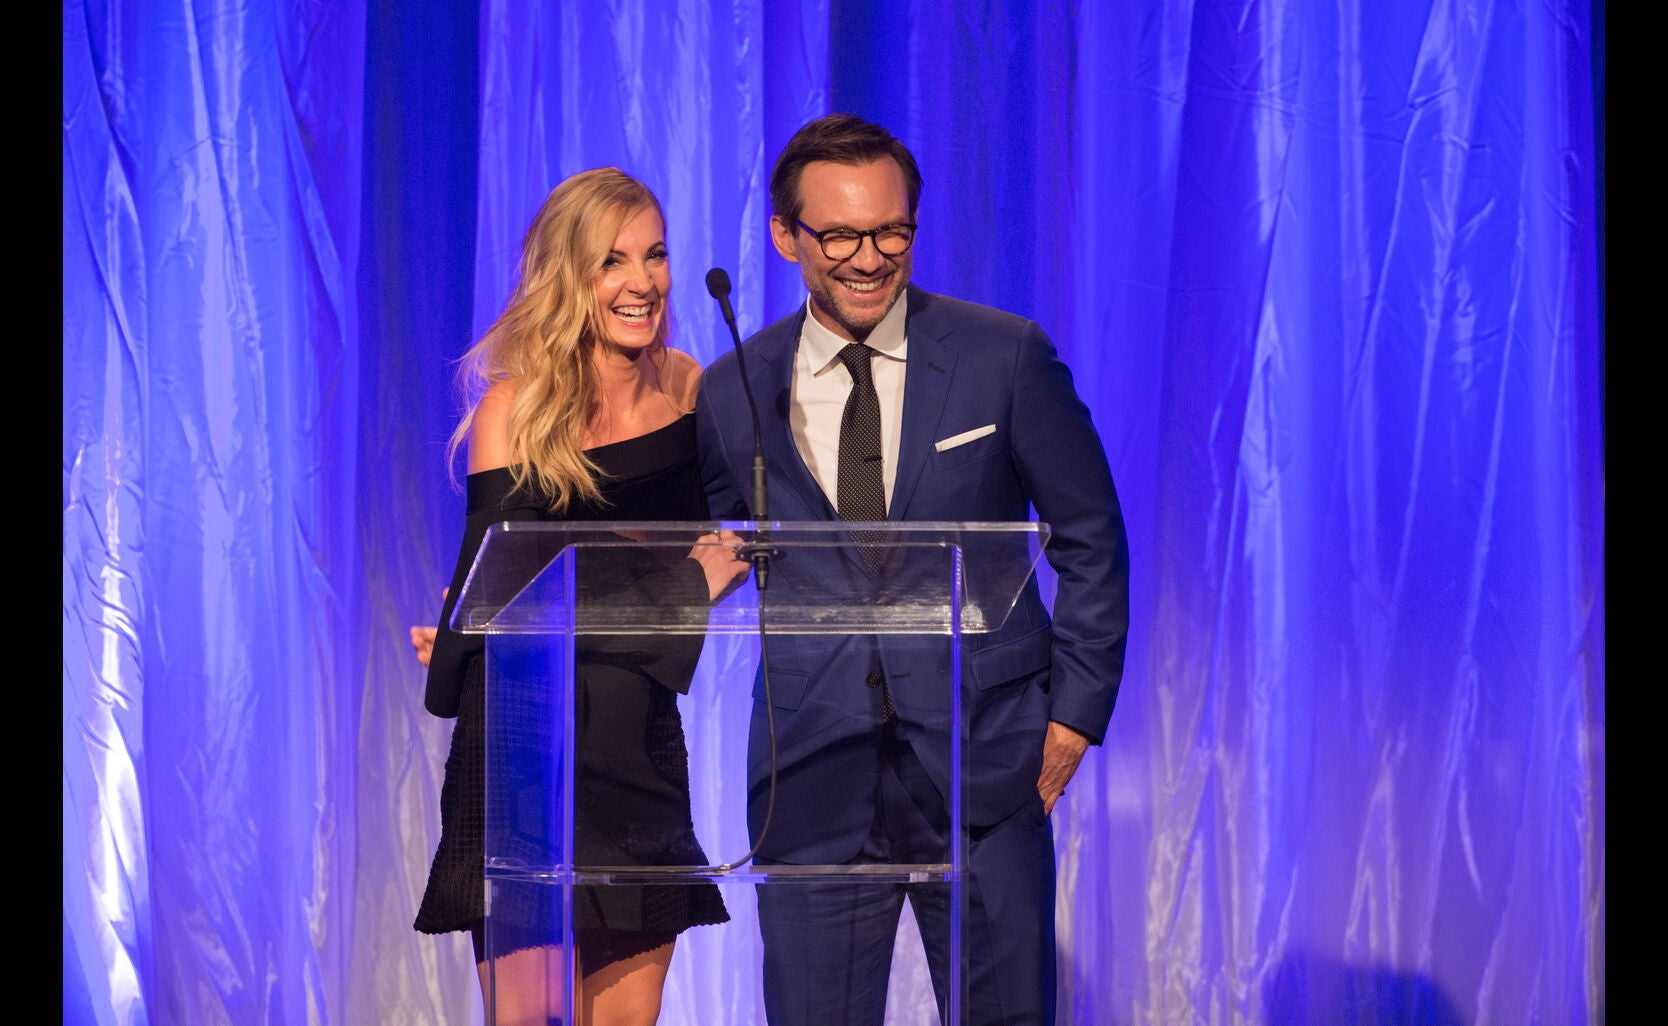 Christian Slater and Joanne Froggatt at the HFPA Grants Banquet 2016